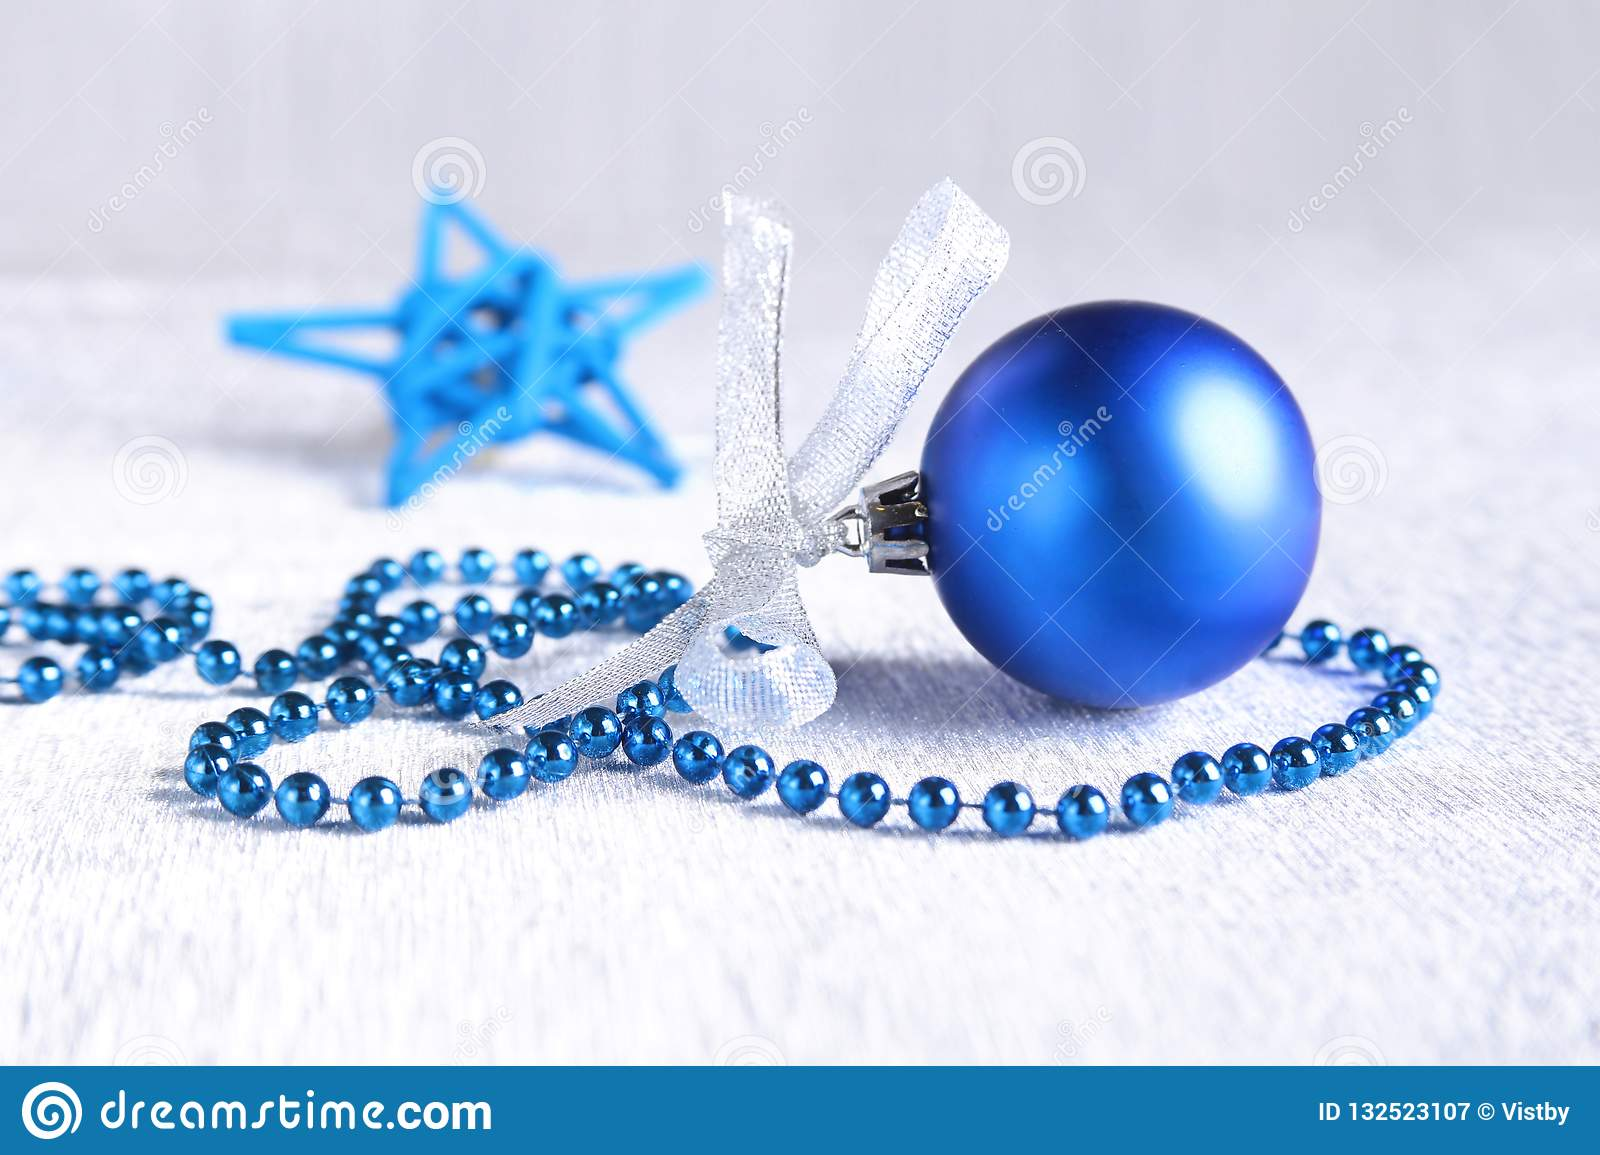 Christmas or holiday composition with blue silver balls on billowy feathers with snow and snowflakes.